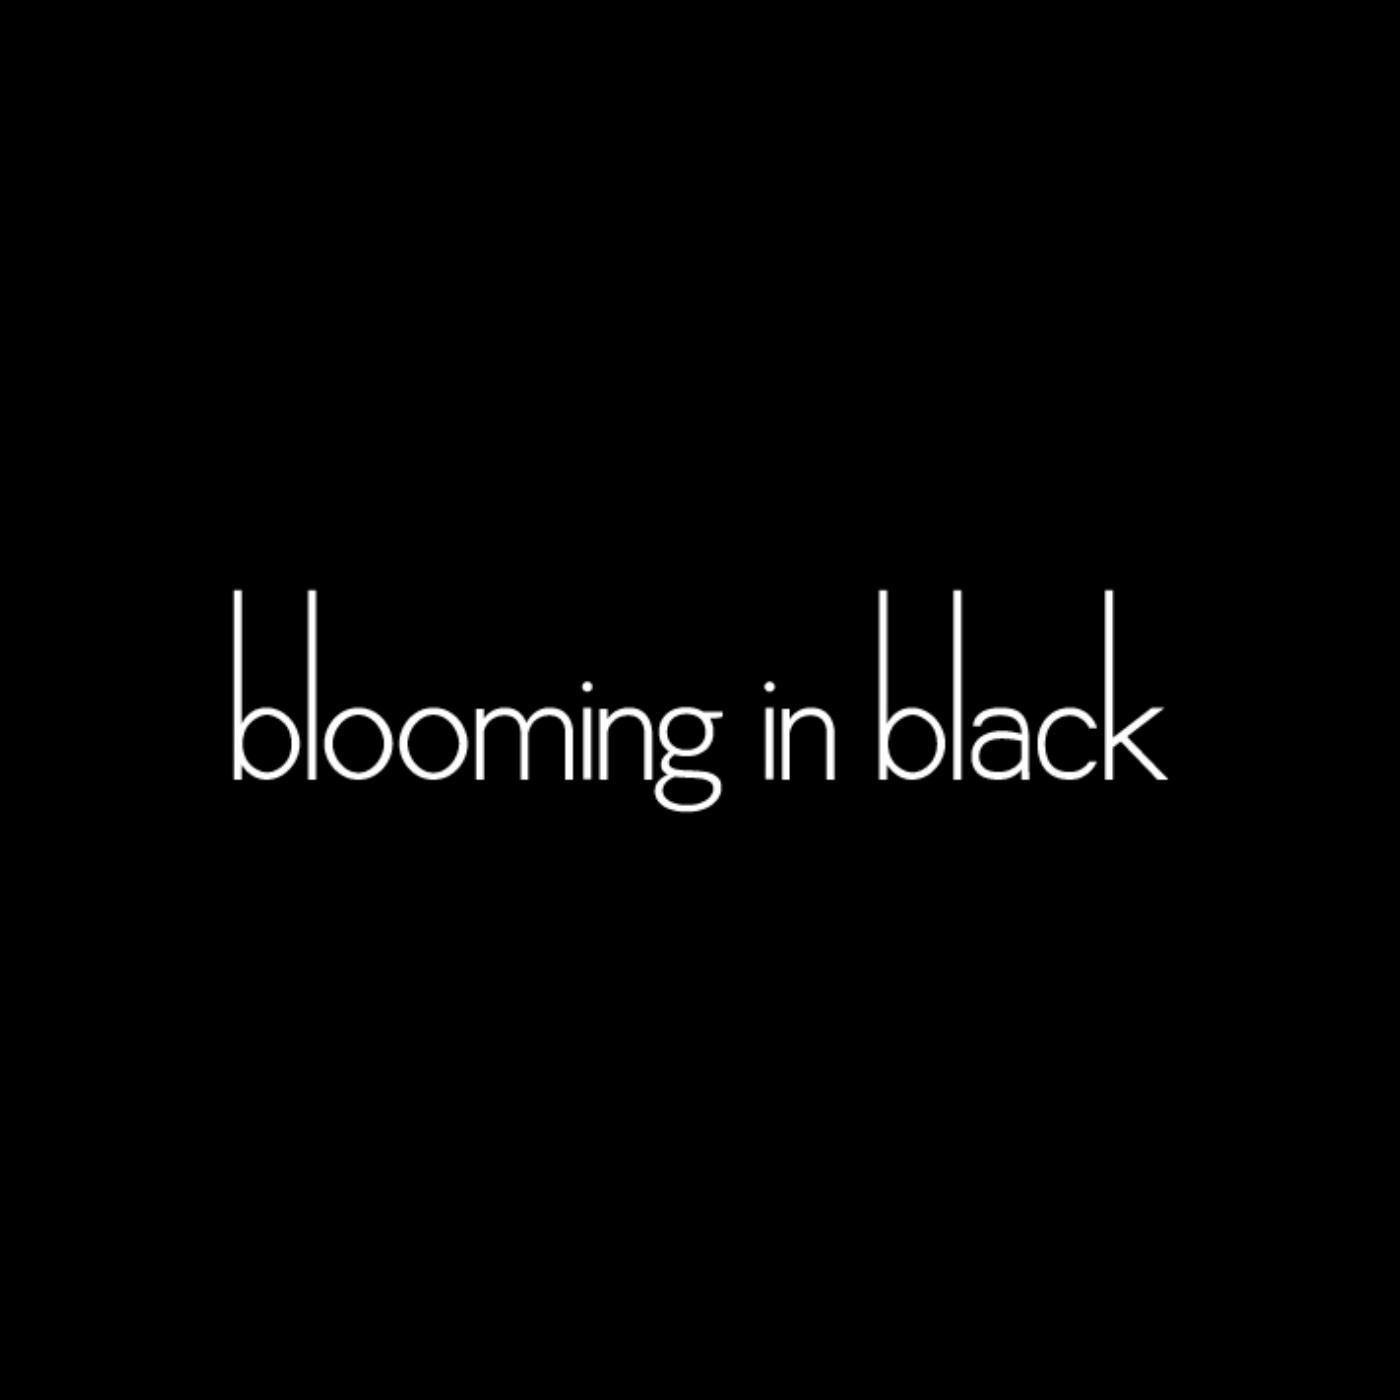 blooming in black show art